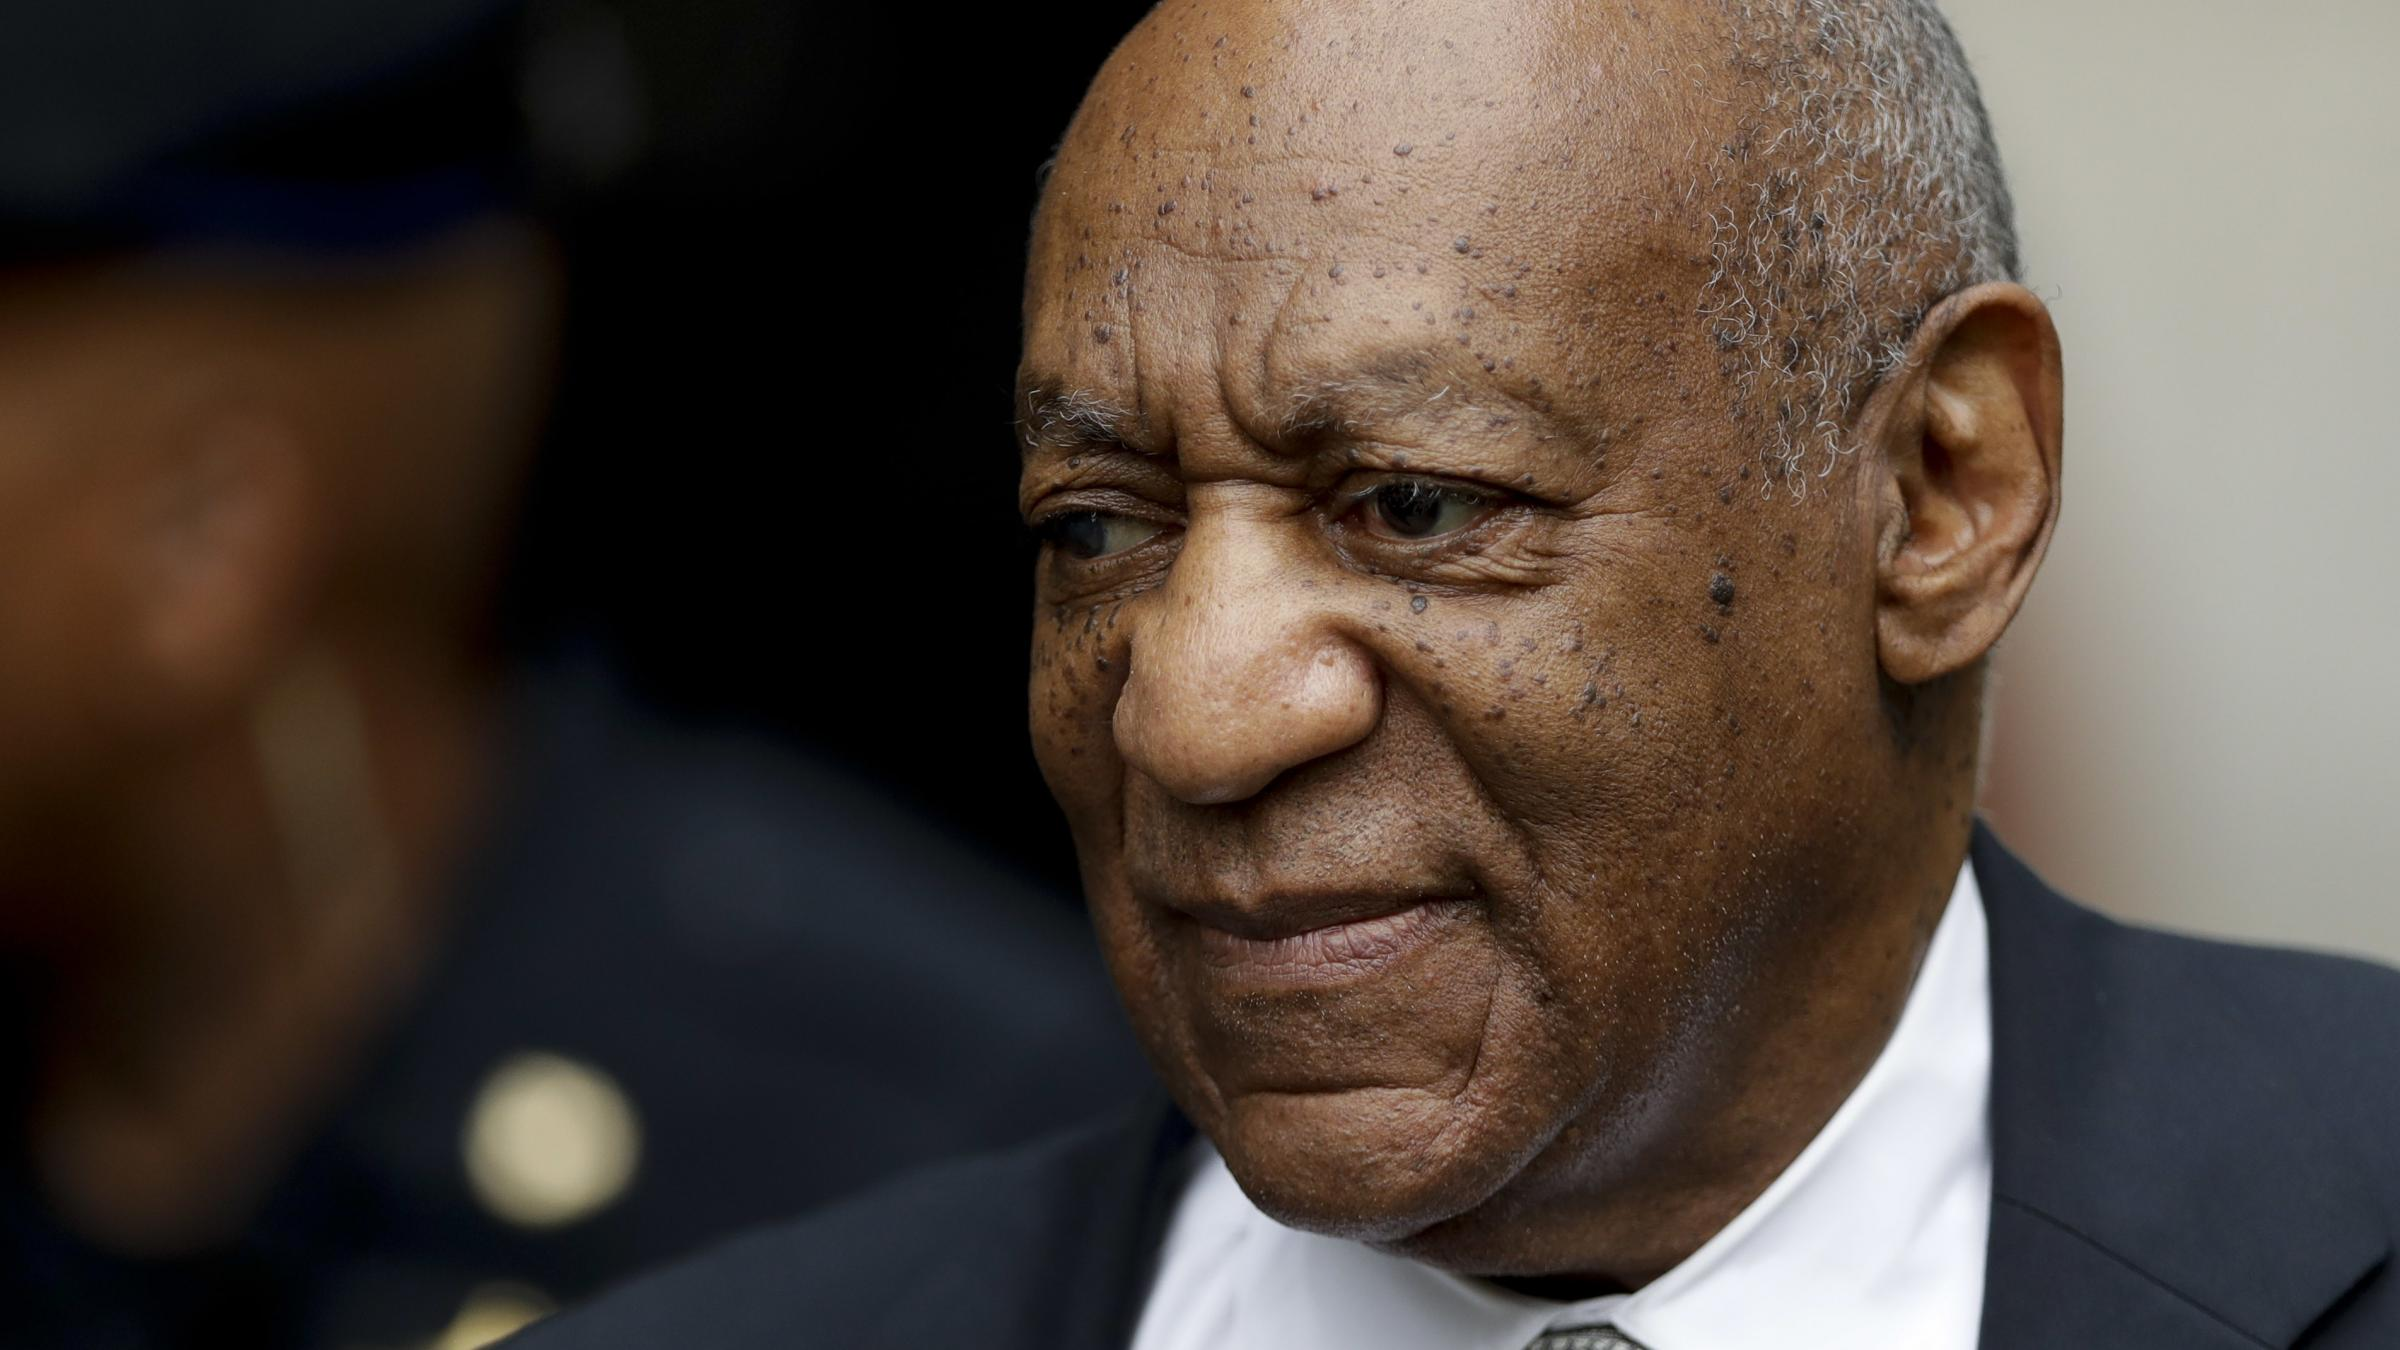 Camille Cosby calls district attorney 'exploitively ambitious' as celebs react to mistrial